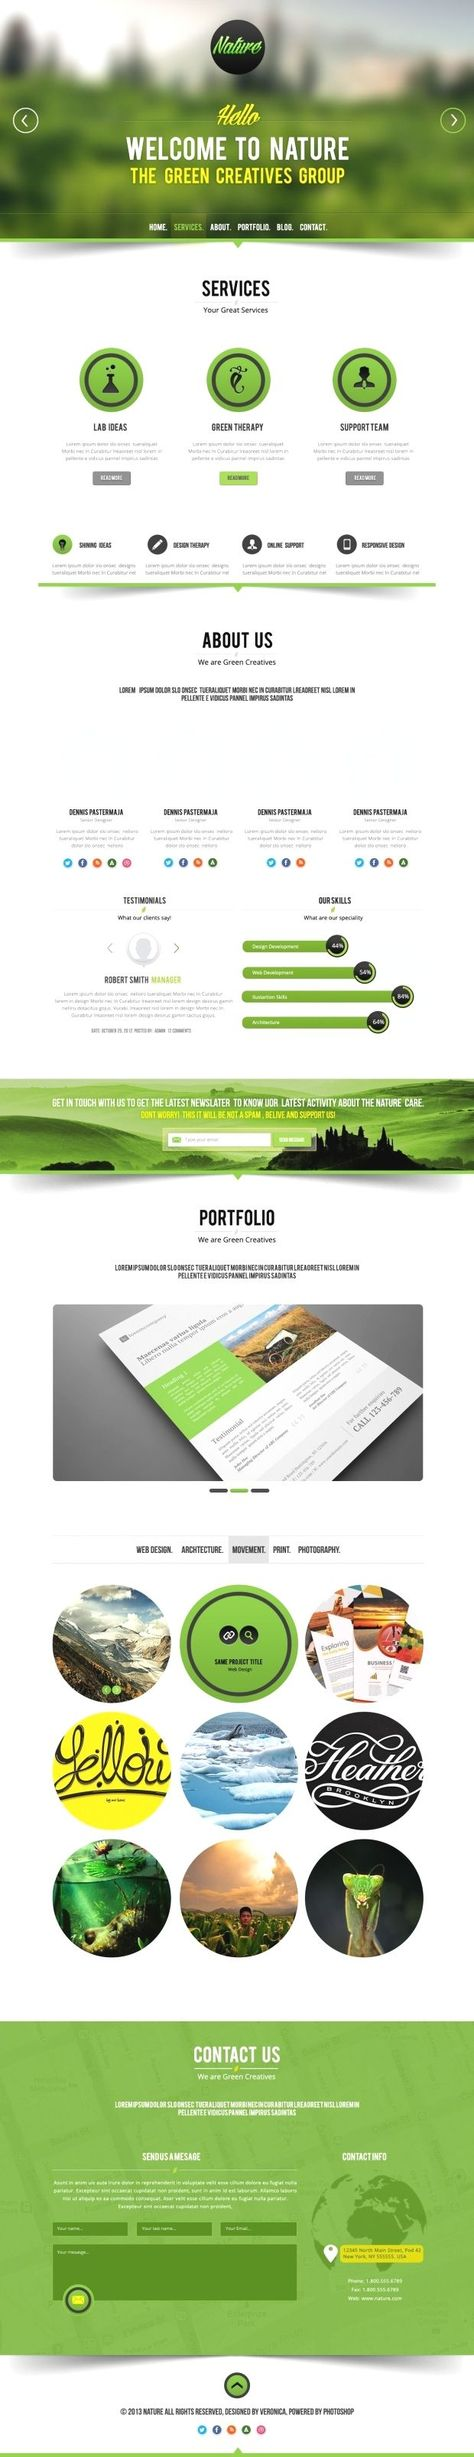 Nature Psd Template Nature, Psd, Template | cakerecipespins.club